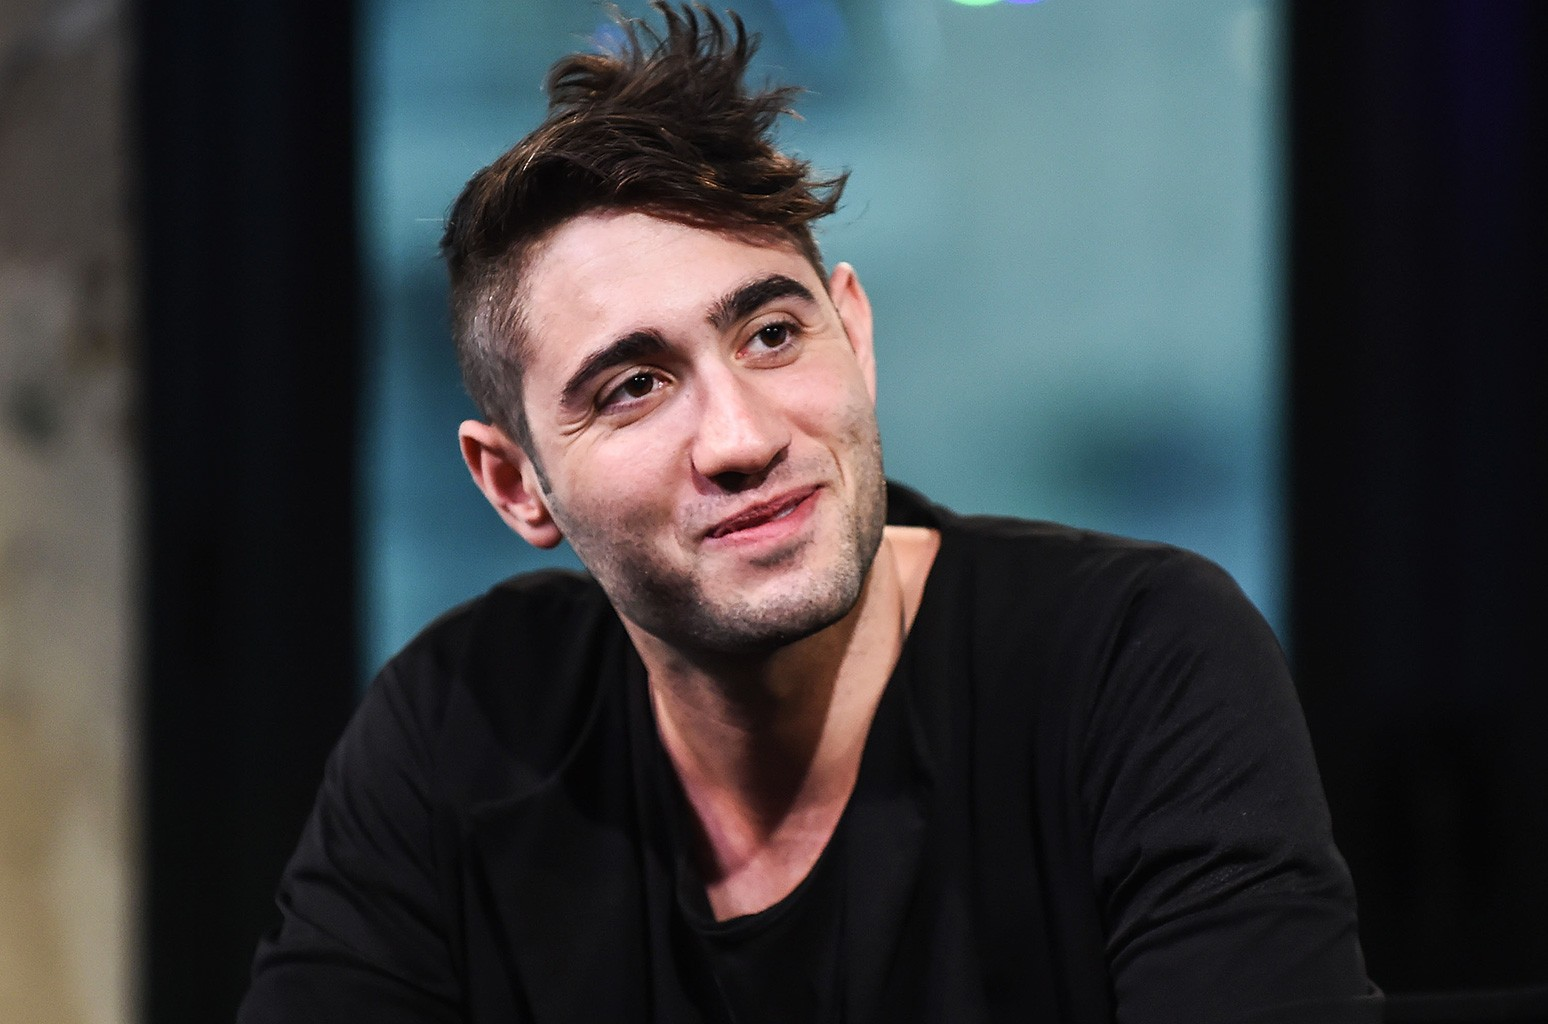 NEW YORK, NY - JUNE 13:  Justin David Blau, better known by his stage name 3LAU attends AOl Build to discuss the 'Is It Love' Instagram Contest at AOL Studios on June 13, 2016 in New York City.  (Photo by Daniel Zuchnik/WireImage)